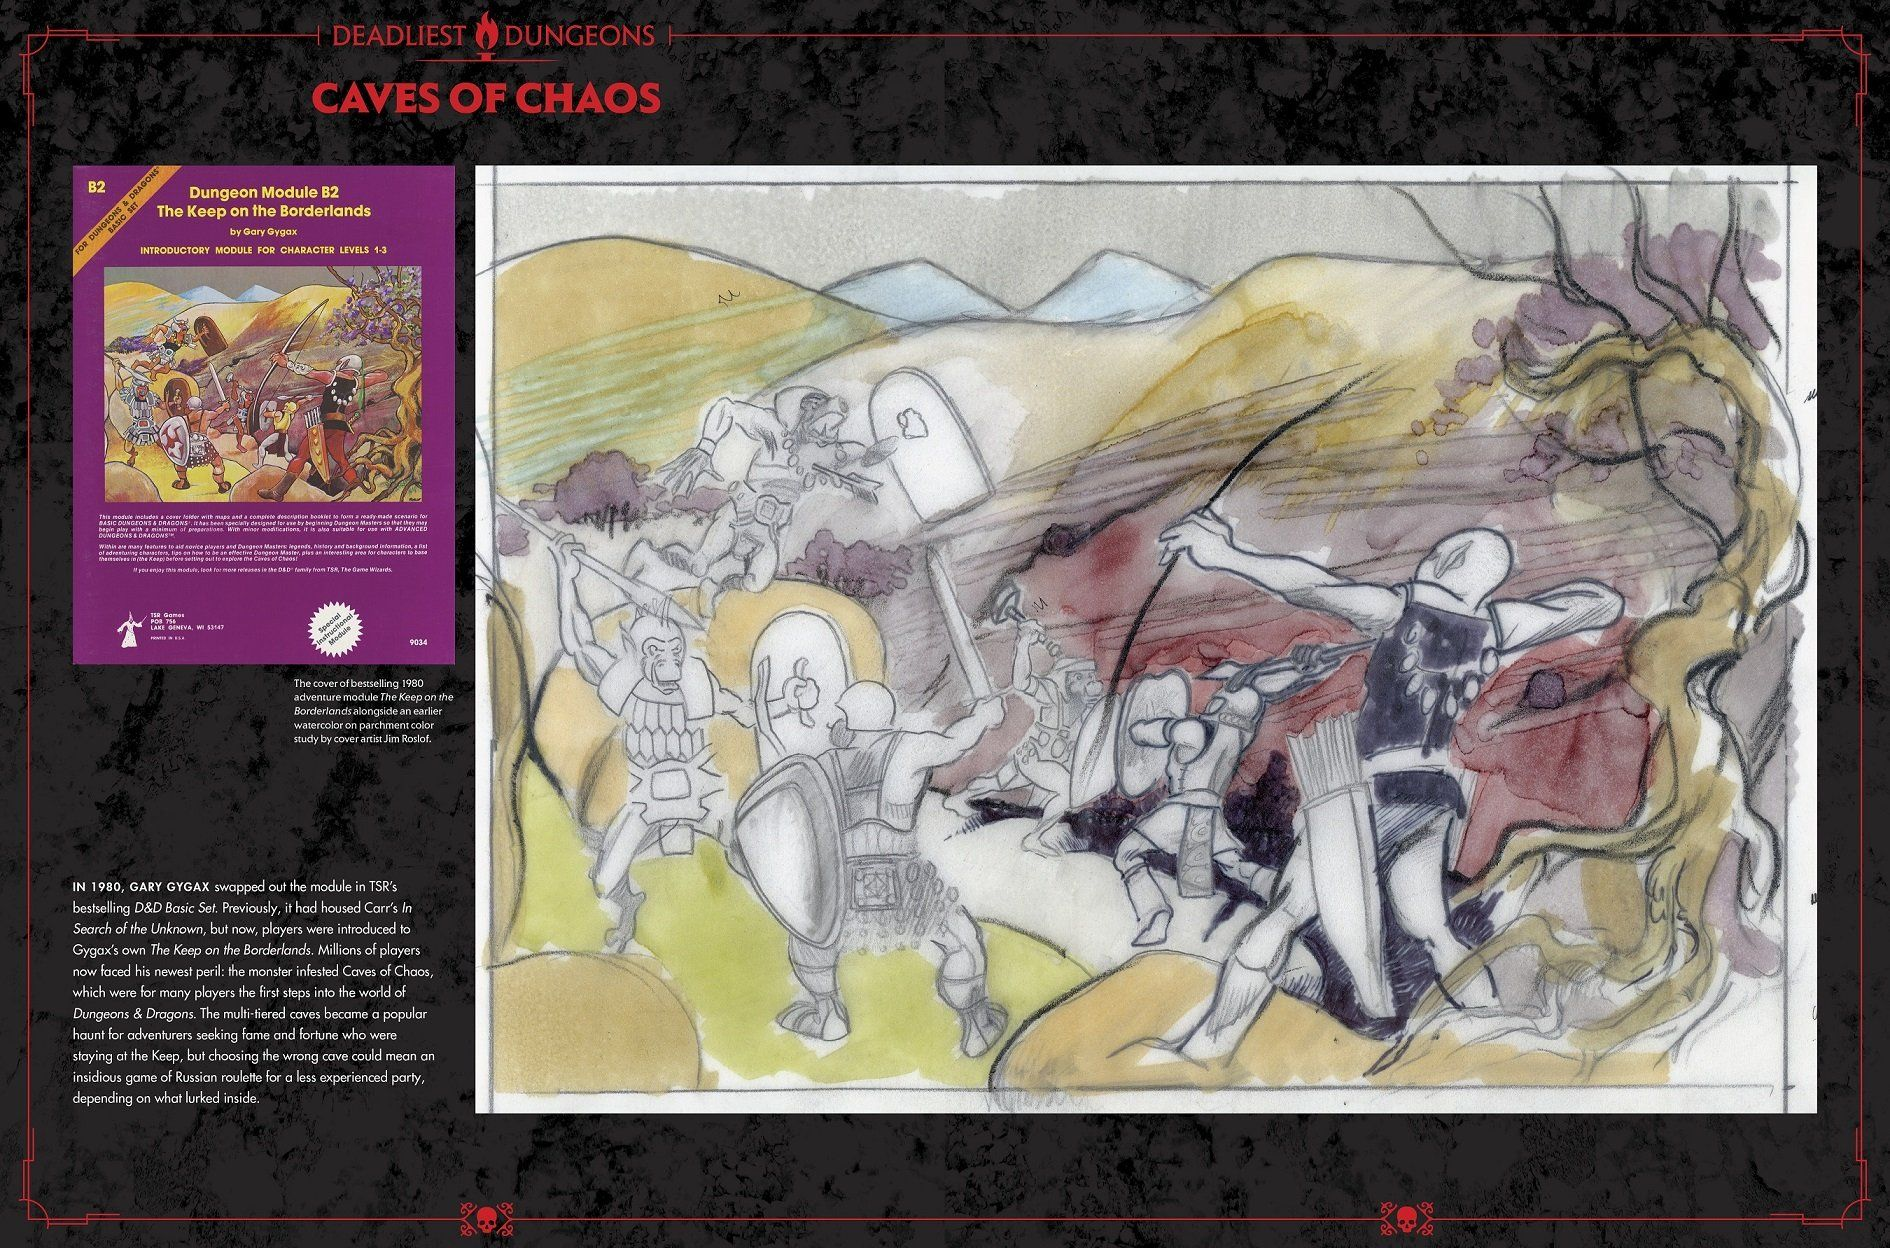 Dungeons and Dragons Art and Arcana: A Visual History (Hardcover) - 3